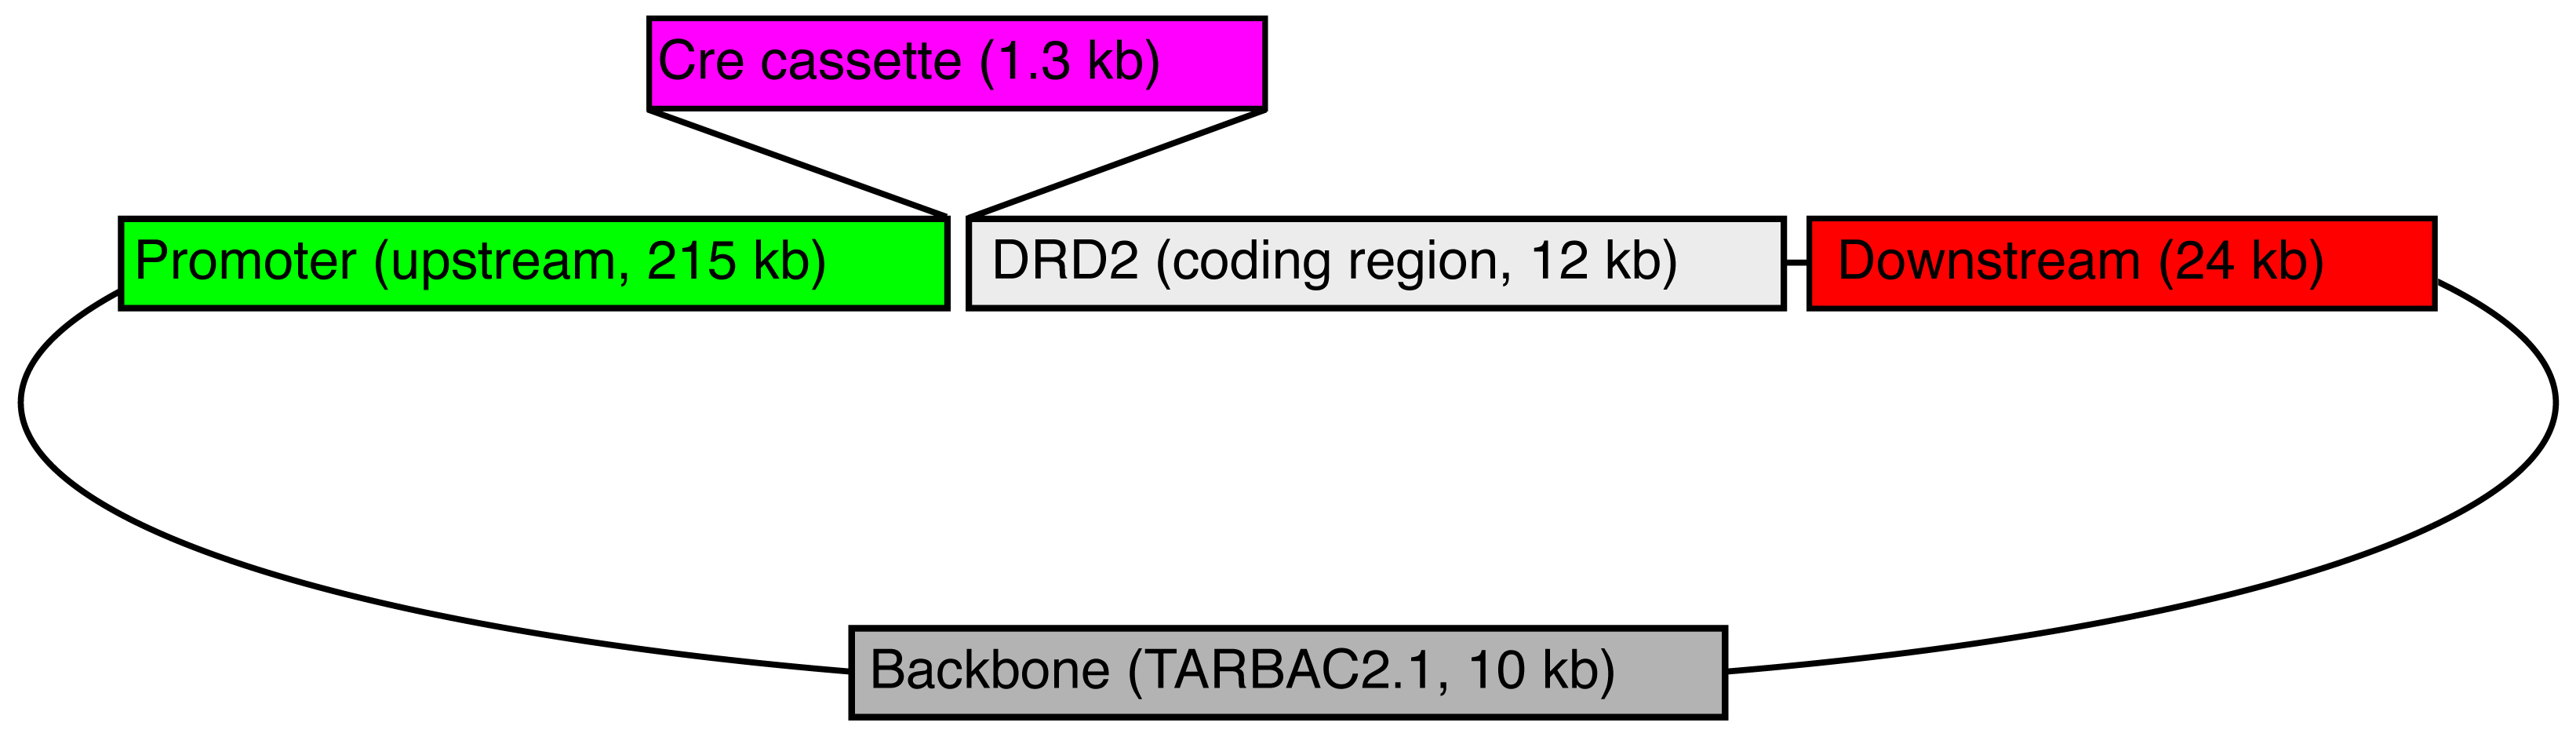 Schematic Draft - Drd2-iCre